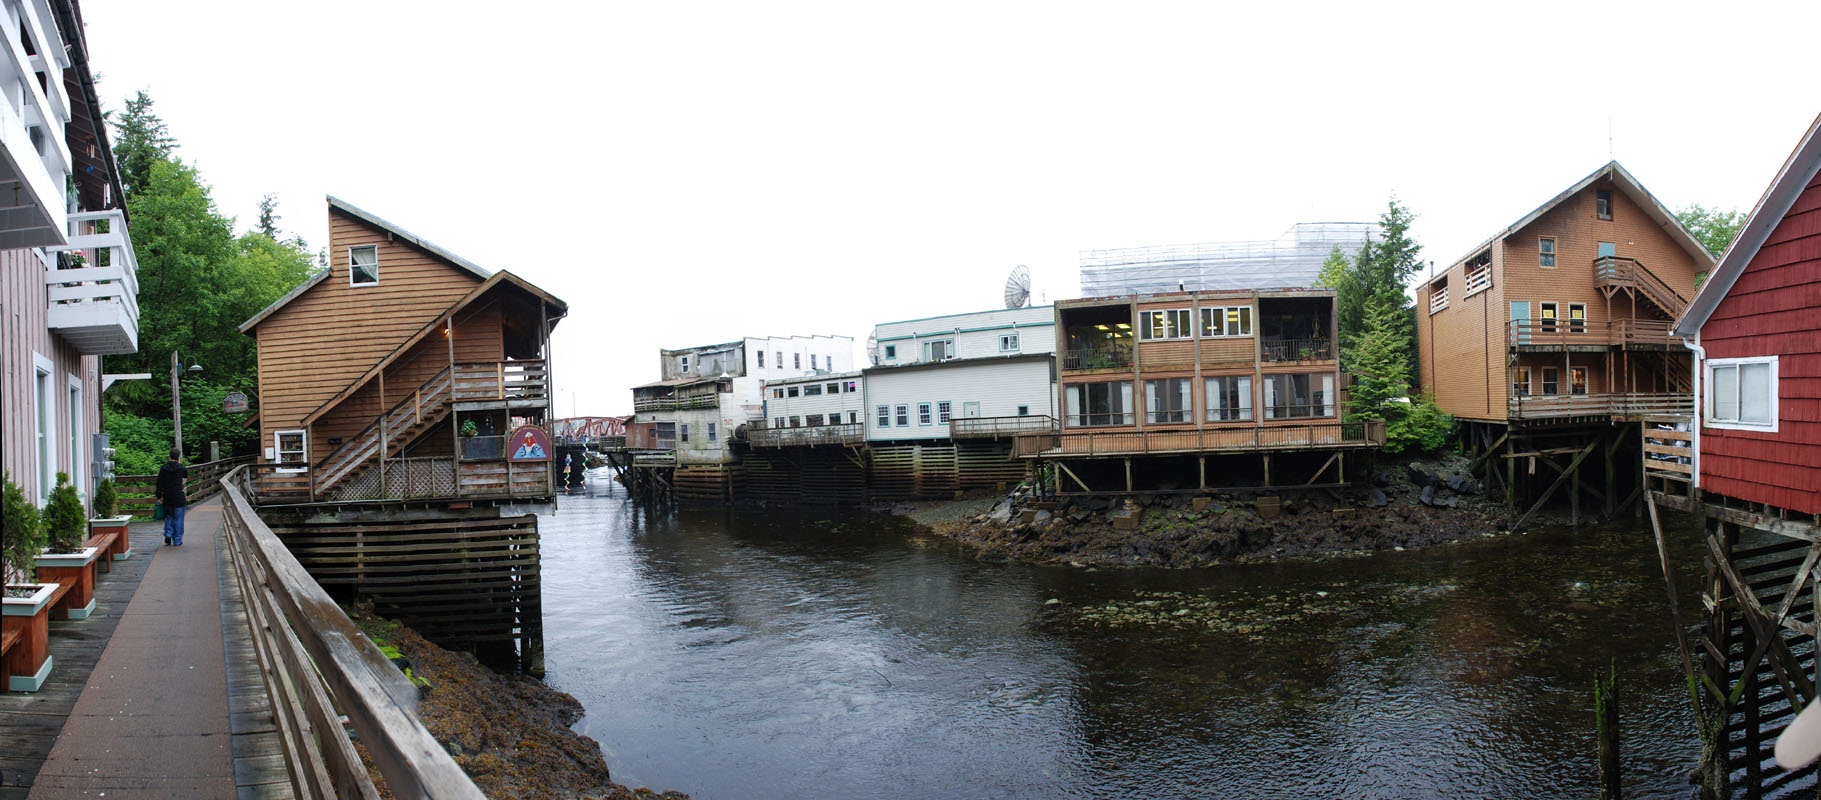 Ketchikan Alaska Map Google.Panoramic Photography Jacob Rosen Alaska